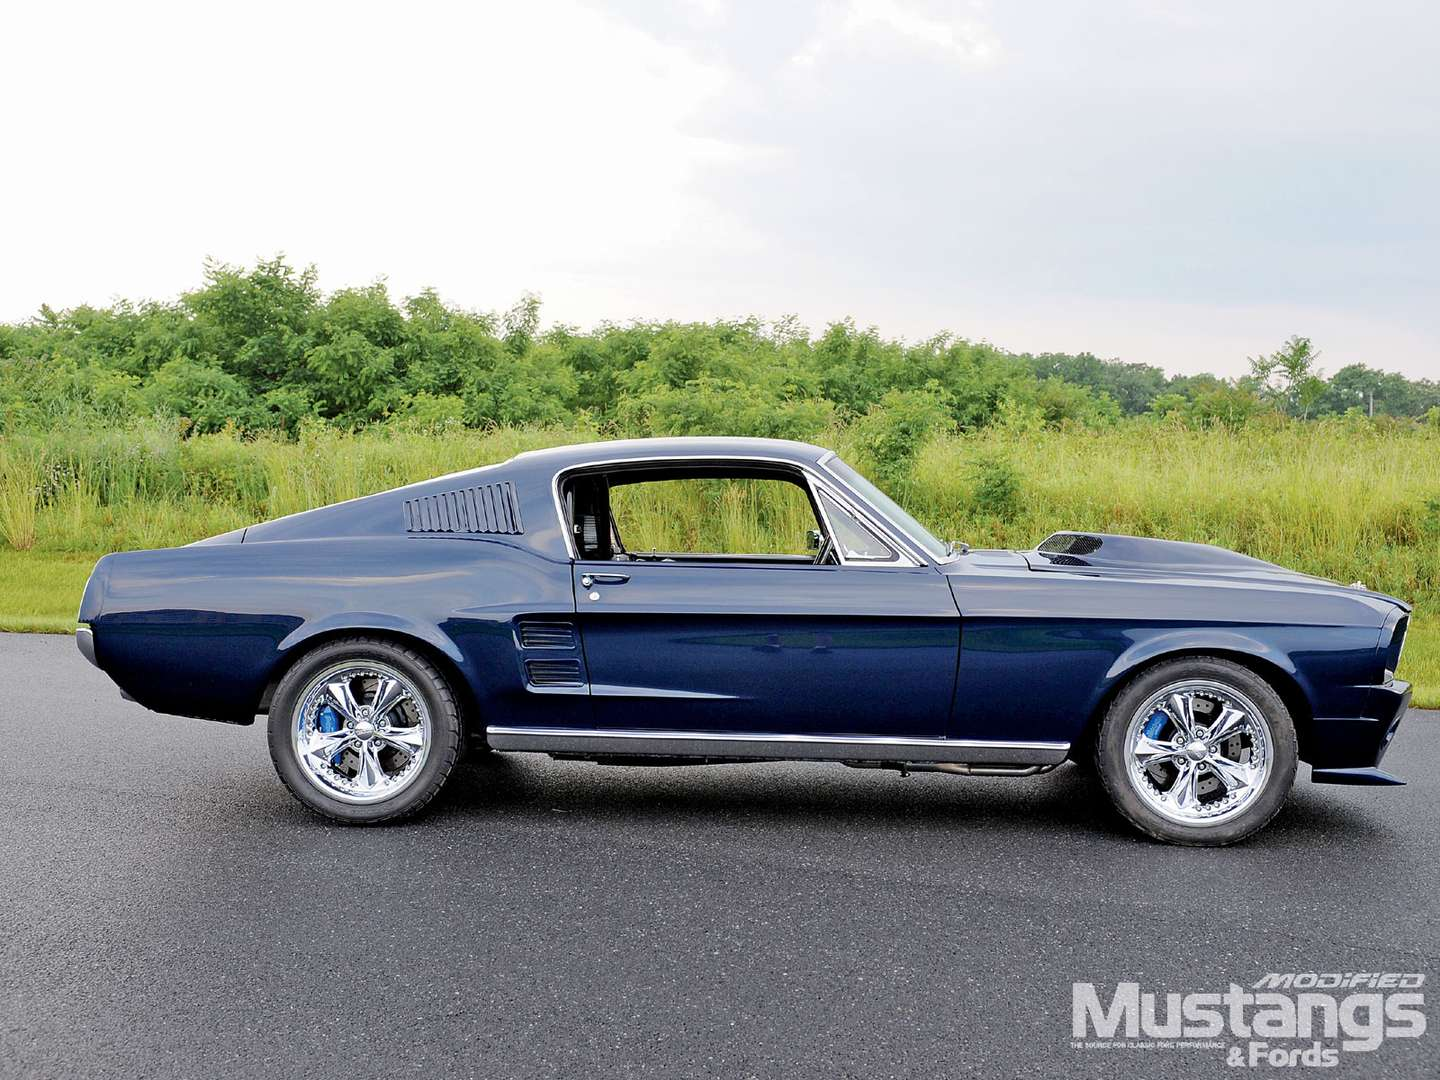 Ford Mustang fastback #7339881